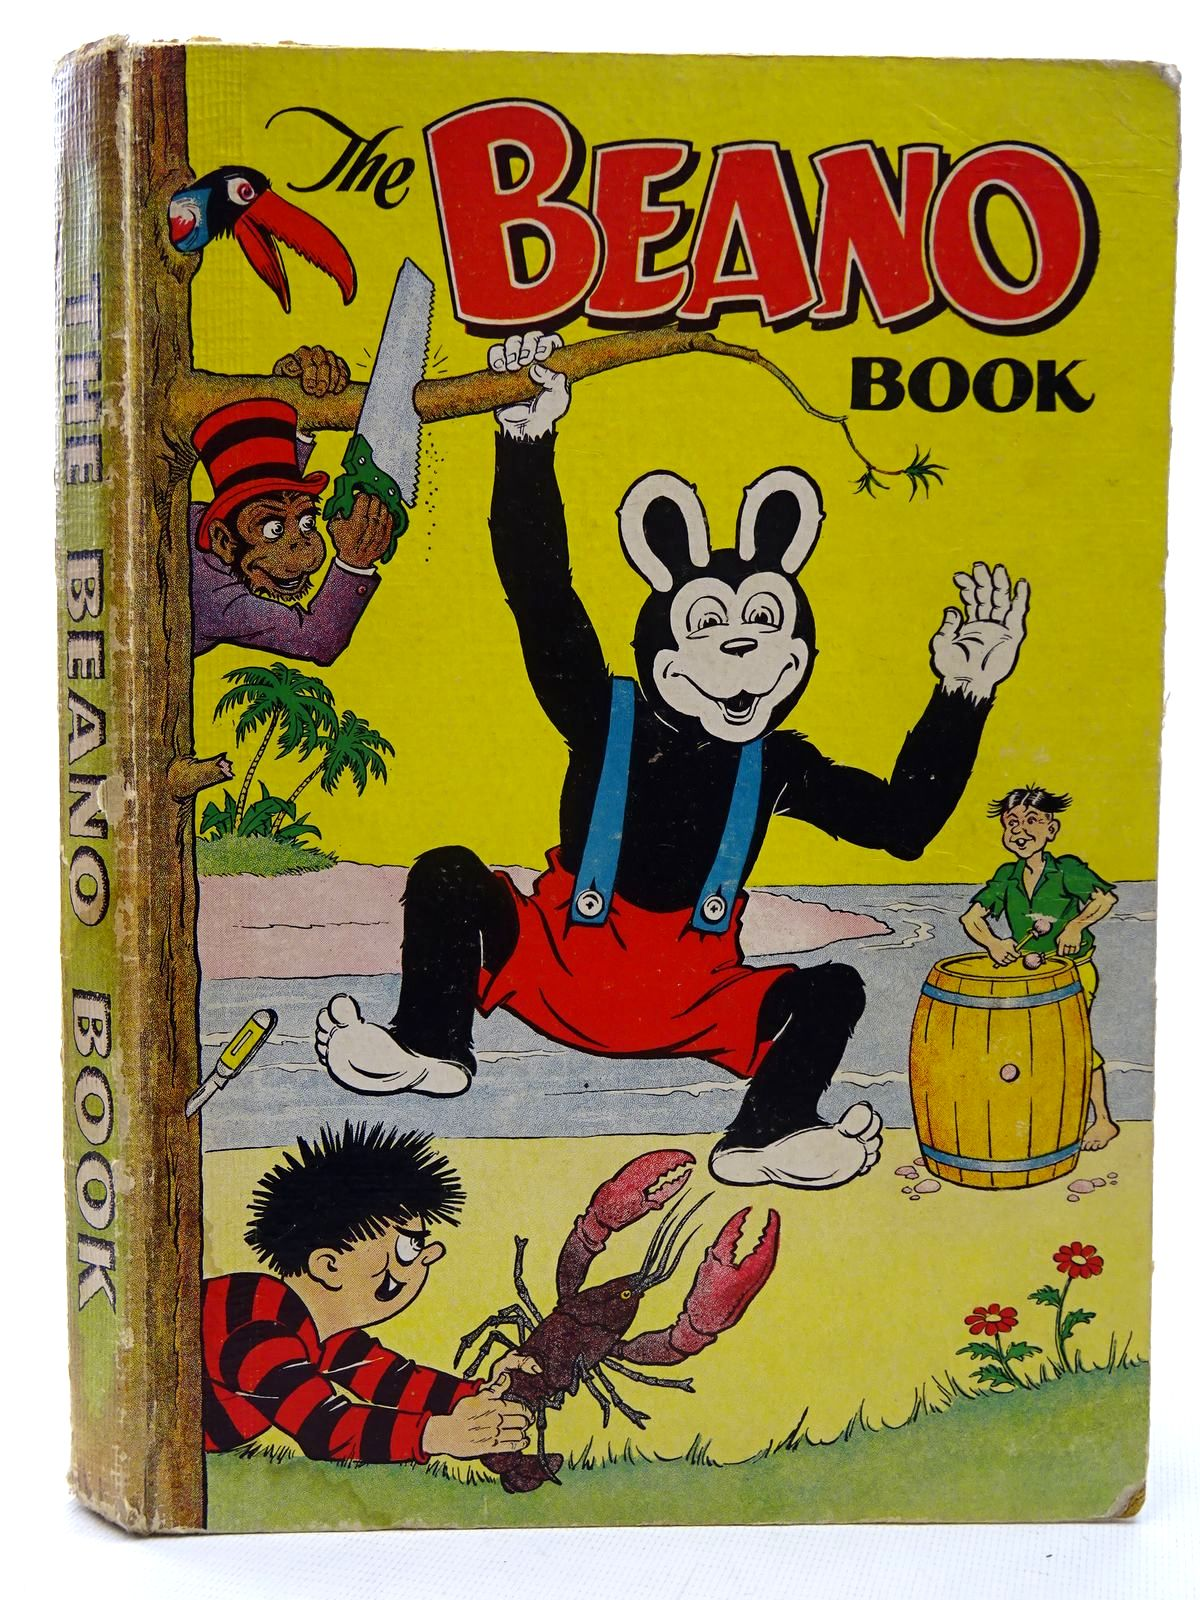 Photo of THE BEANO BOOK 1954 published by D.C. Thomson & Co Ltd. (STOCK CODE: 2126054)  for sale by Stella & Rose's Books